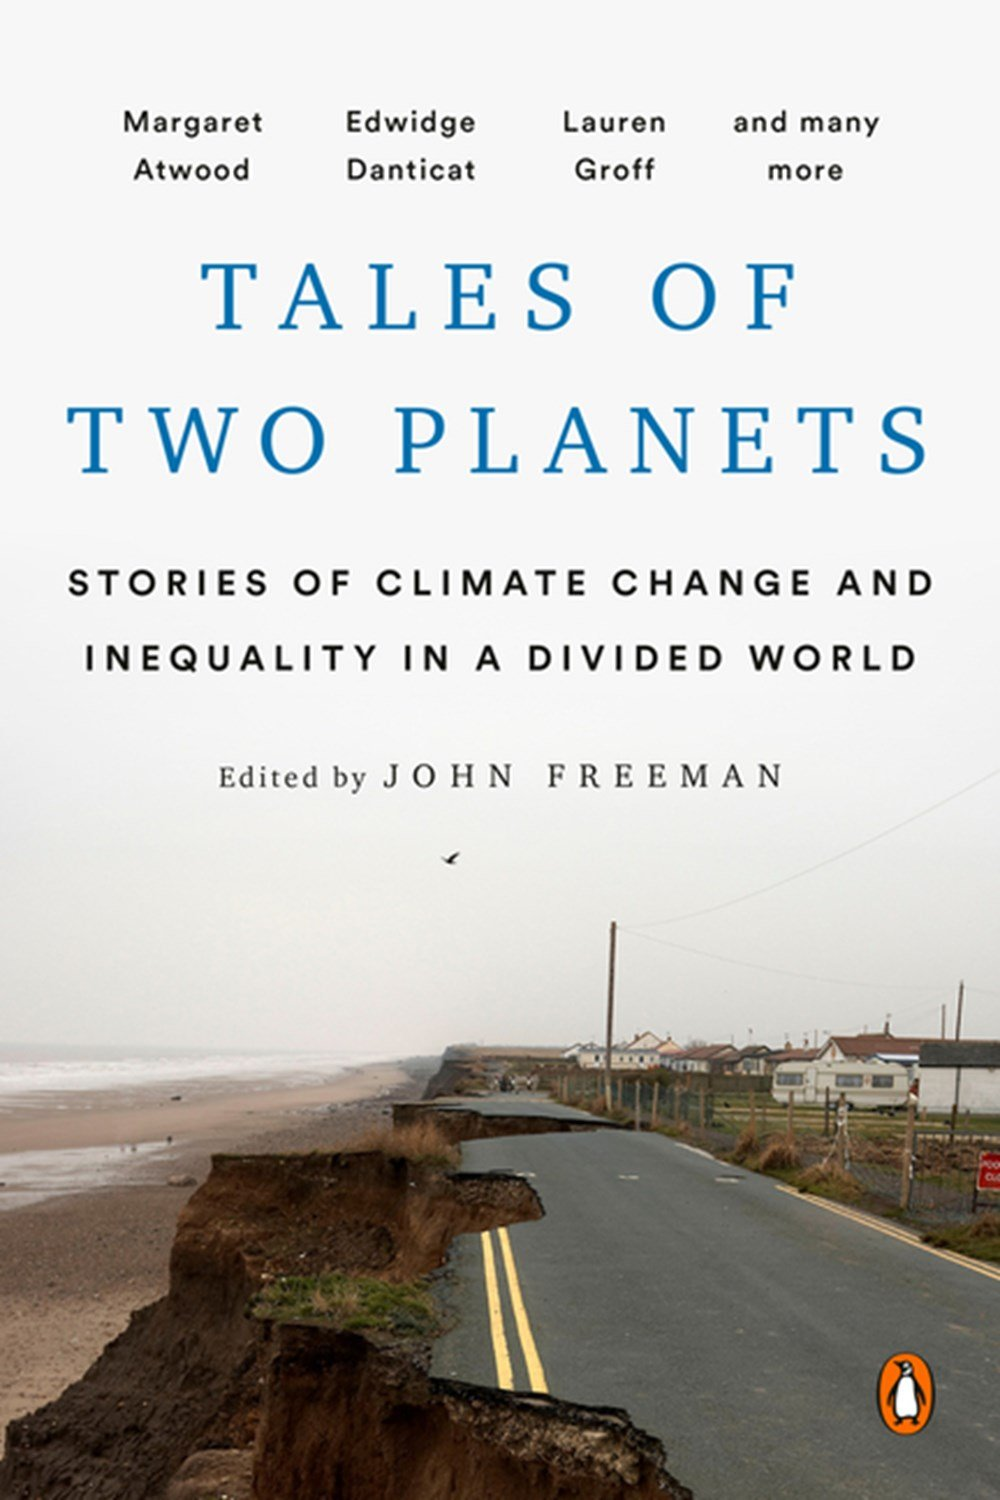 Tales of Two Planets Stories of Climate Change and Inequality in a Divided World